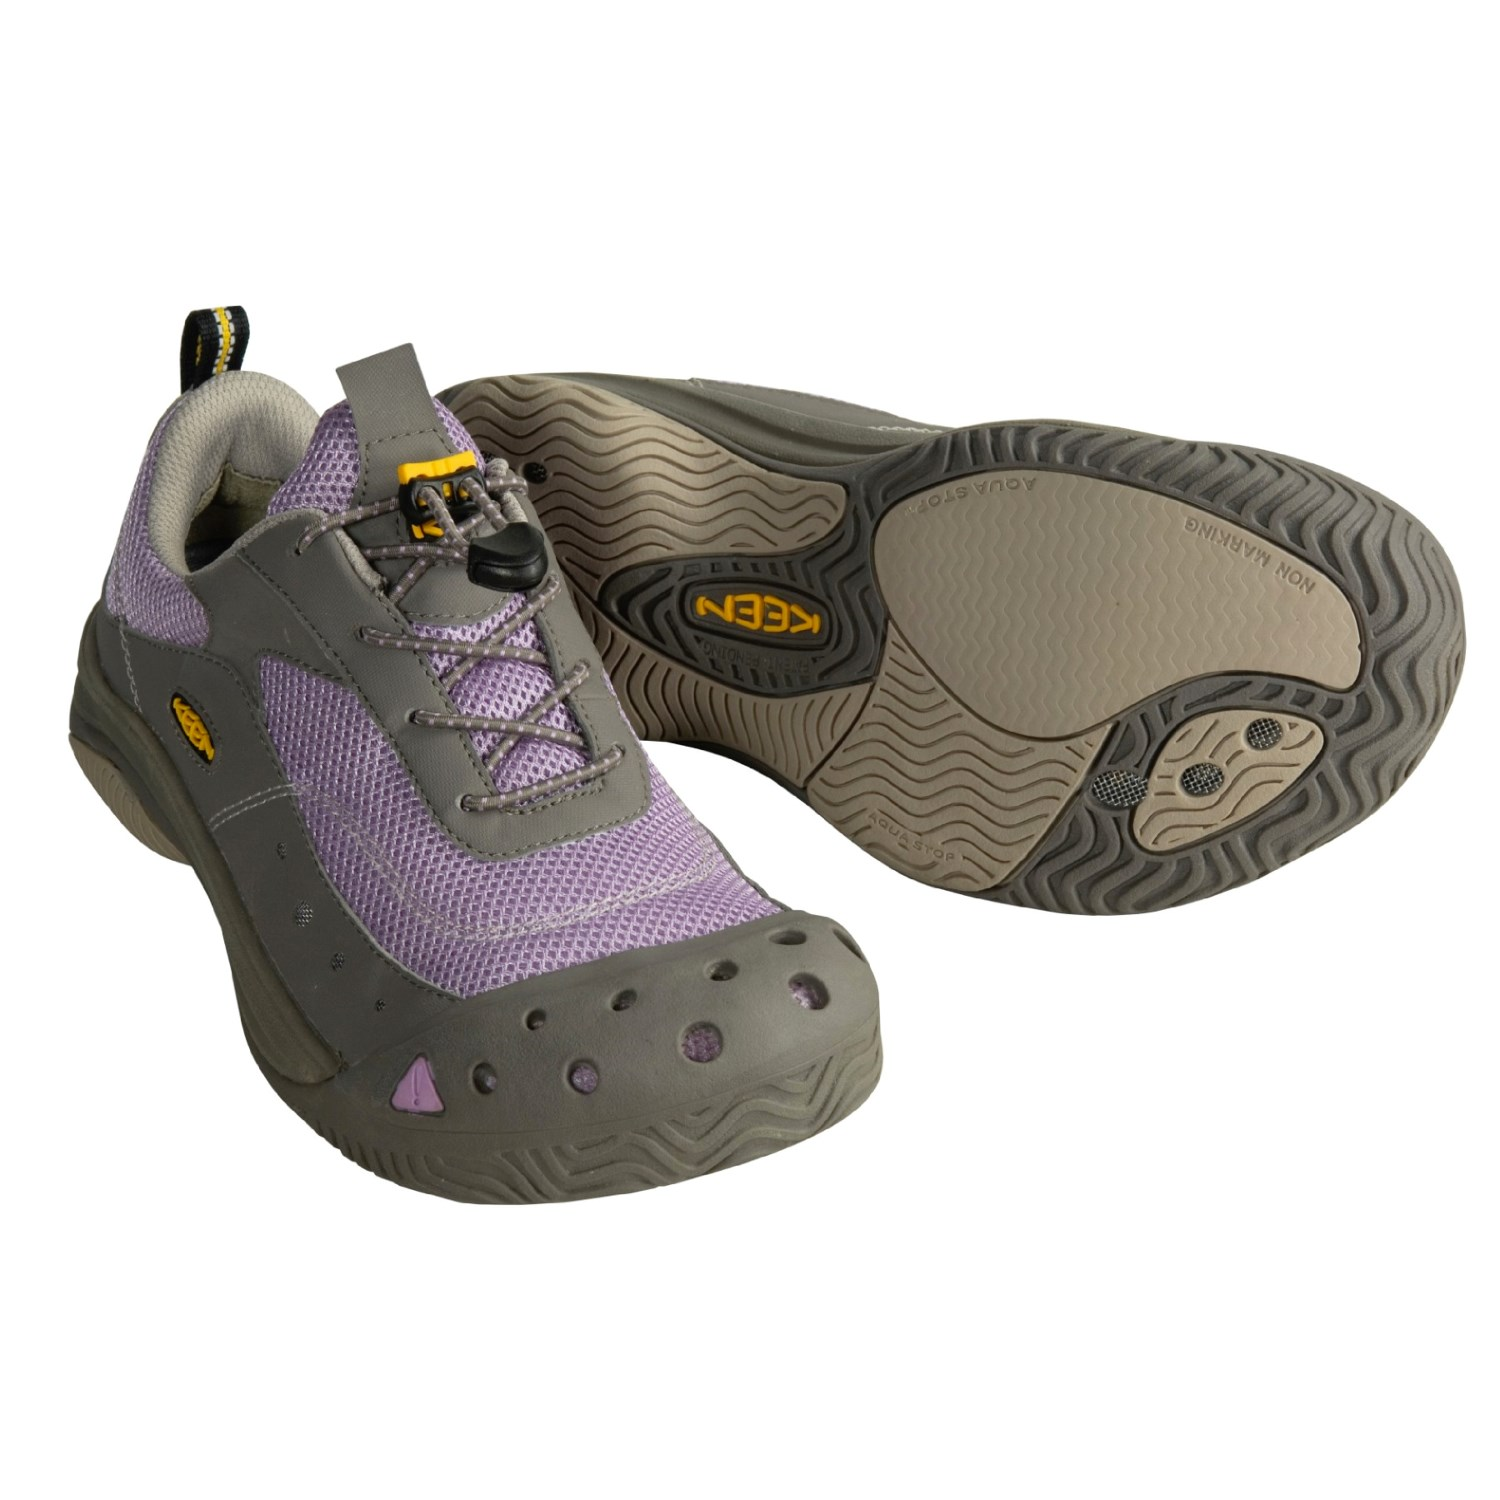 On Sale Womens Water Shoes - Boots - Swim Shoes - up to 40% off